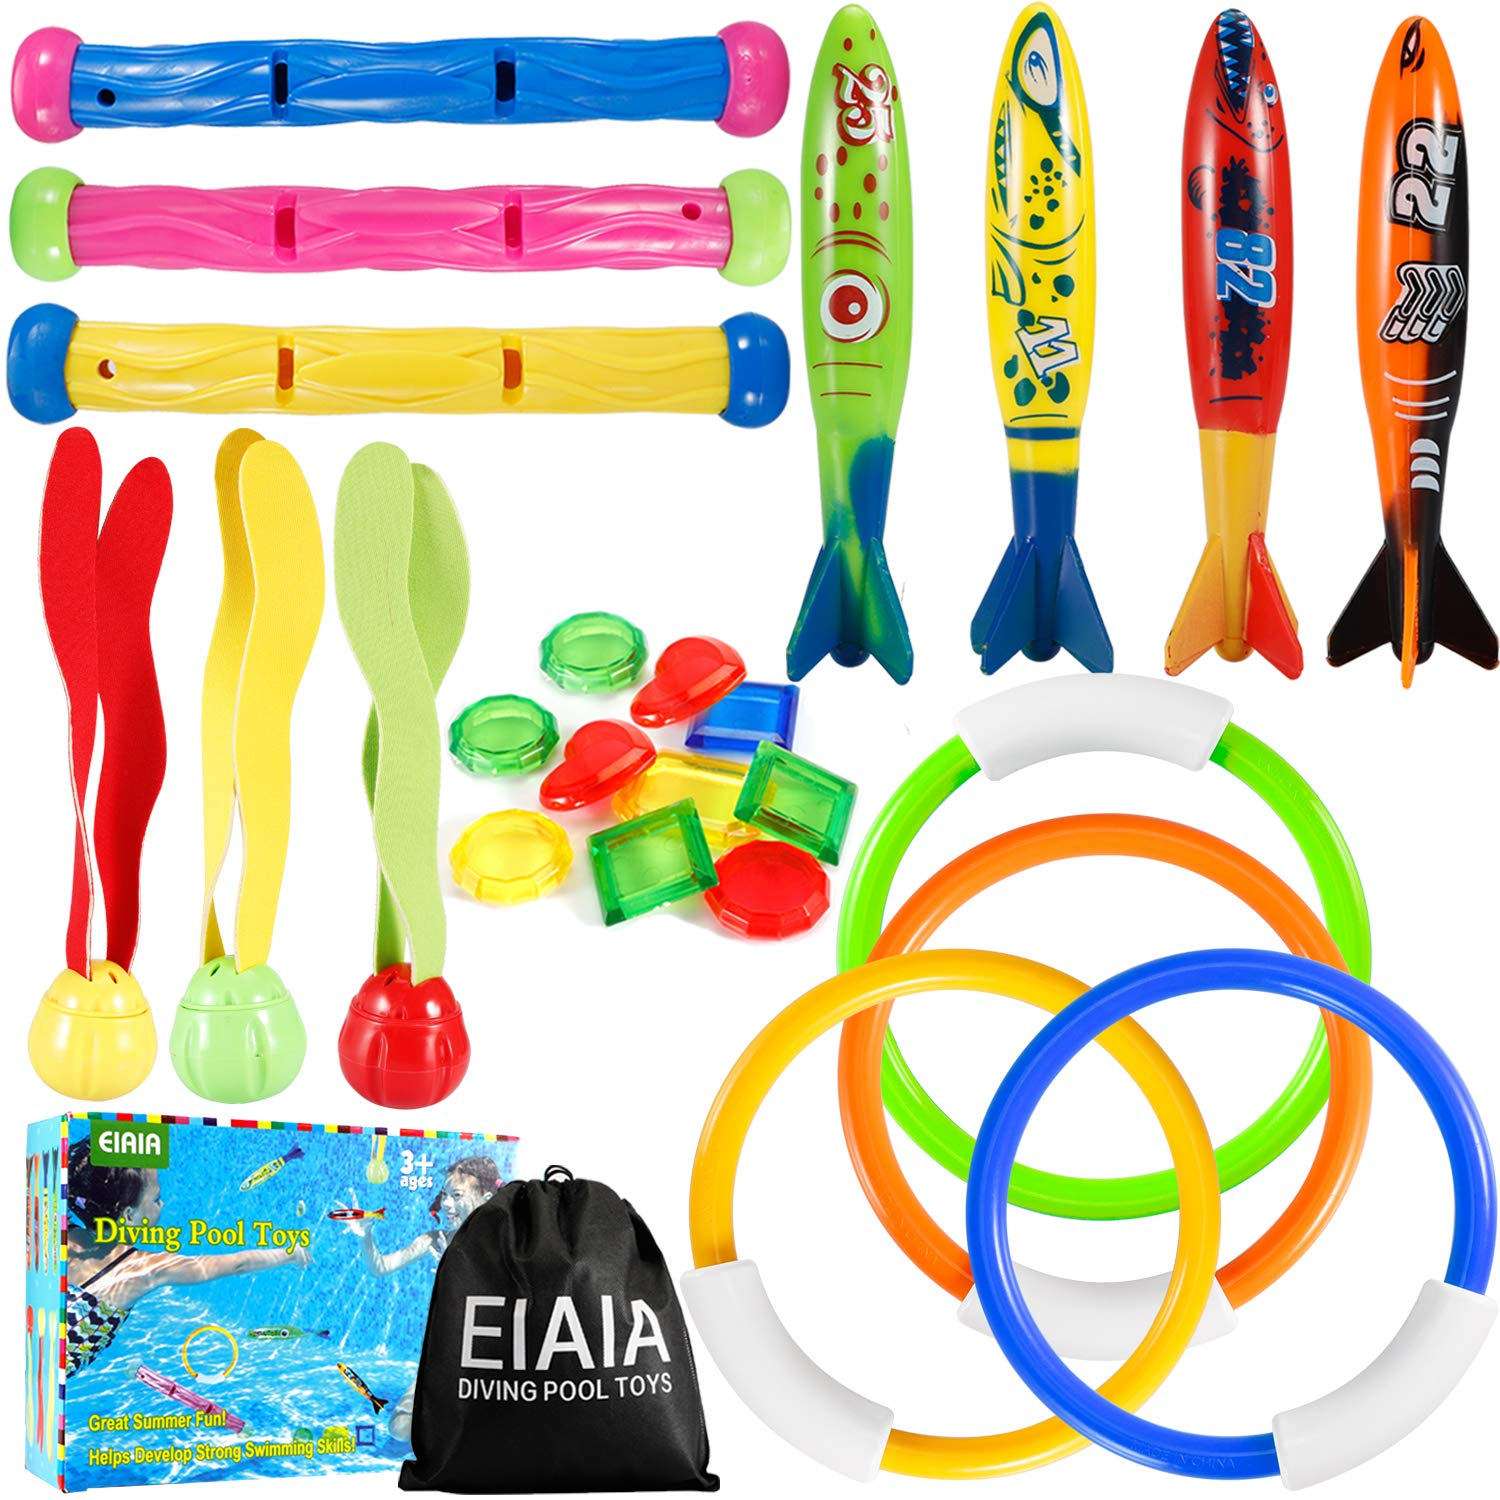 EIAIA Pool Toys for Kids - Under Water Diving Toys Swim Toys Set, 24 Pack Includes 4 Diving Rings, 3 Diving Sticks, 3 Diving Toy Balls, 4 Torpedo Bandits, 10 Pirate Treasures by EIAIA